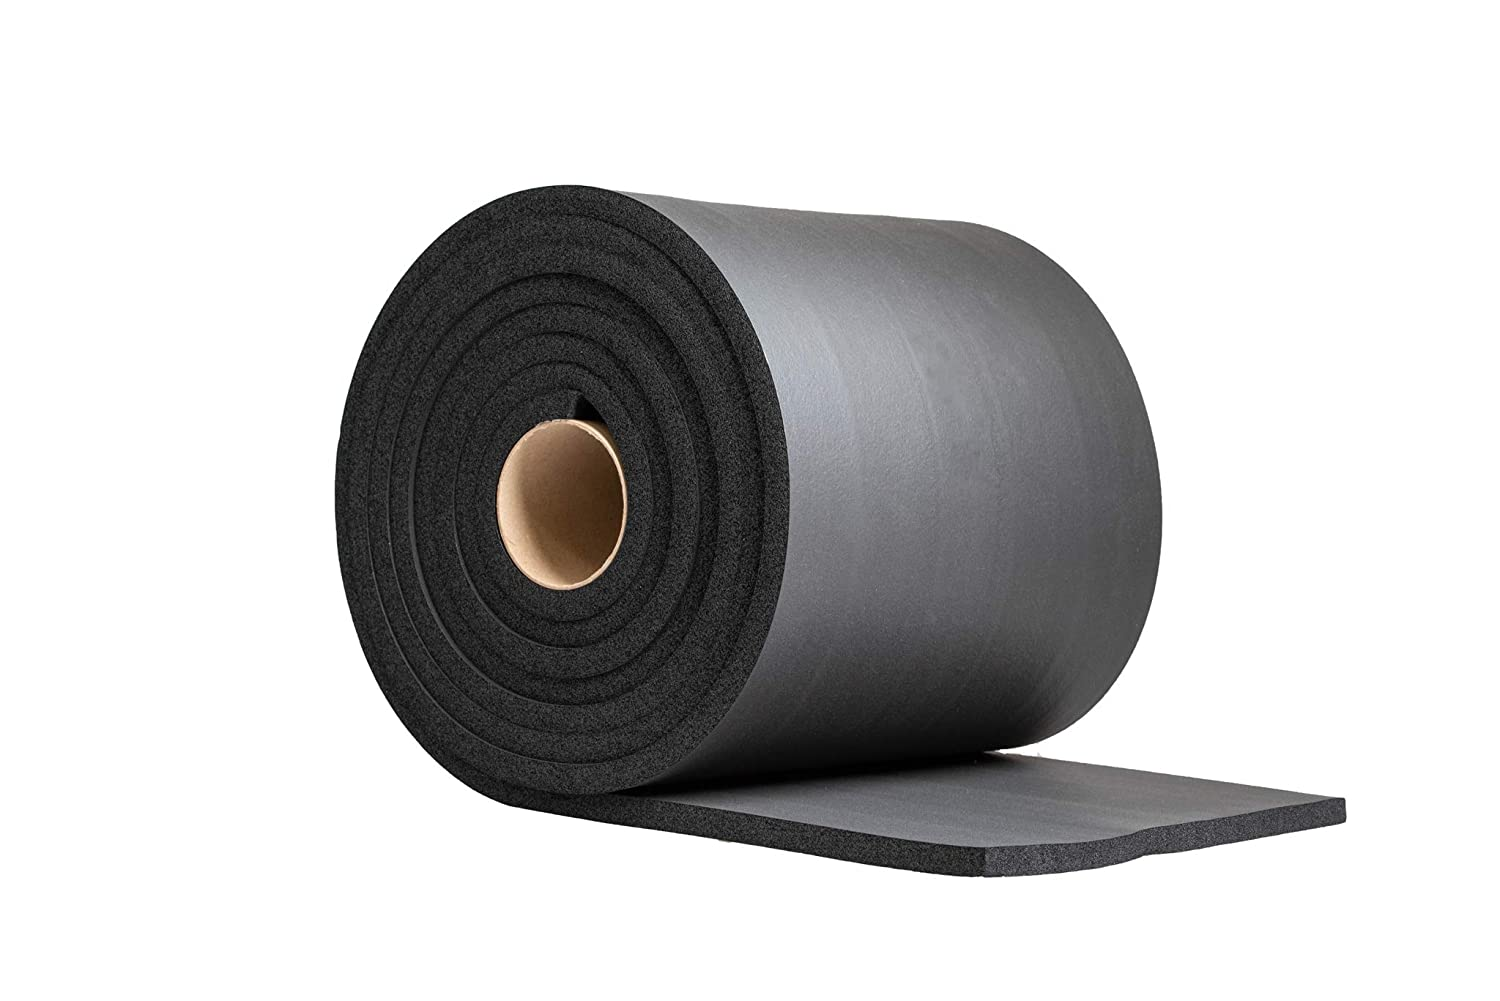 Rubber mat Rubber Sheet (1/2 inch Thick X 12 inch Wide X 15ft) Soft Sponge Rubber Easy Cut Multi-Function Soundproof Padding DIY Project Sheet OKAYASU RUBBER E05ES01